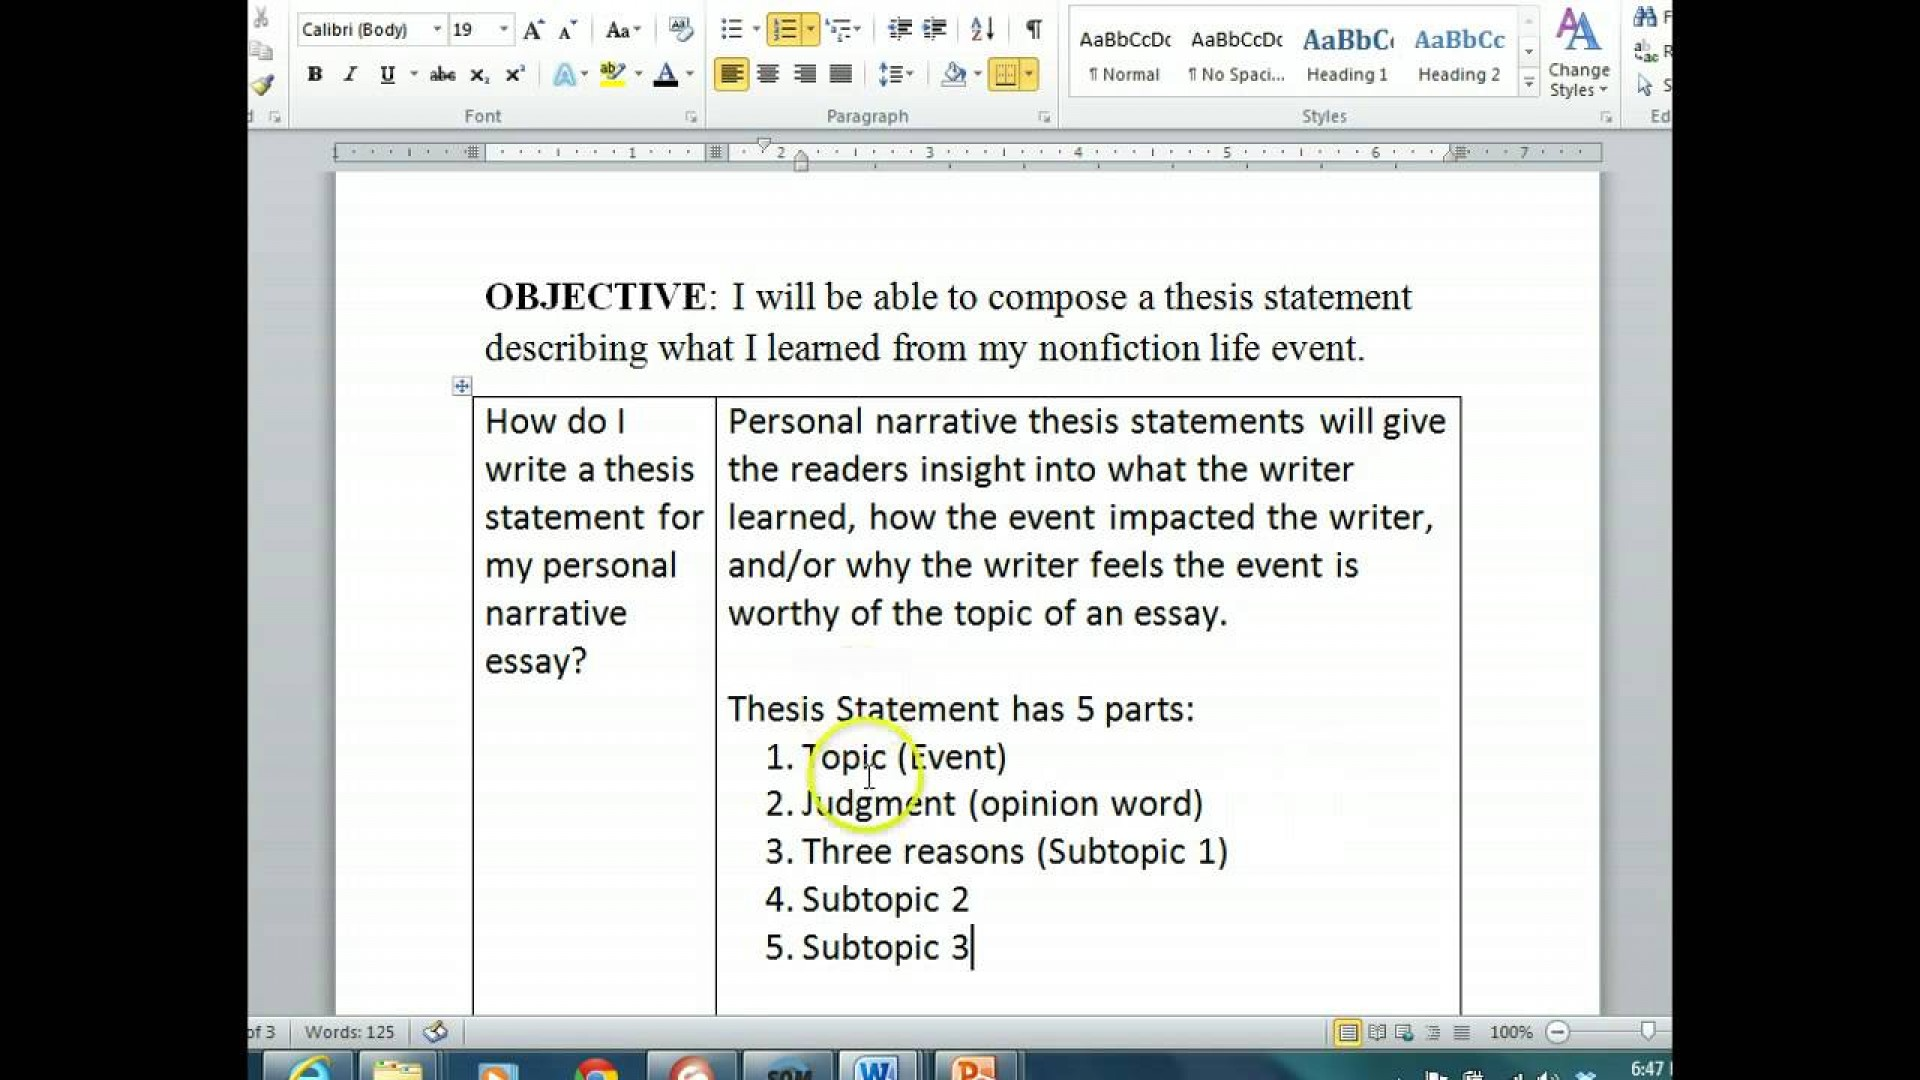 013 Thesis Statement For Narrative Essay Example Astounding Examples 1920